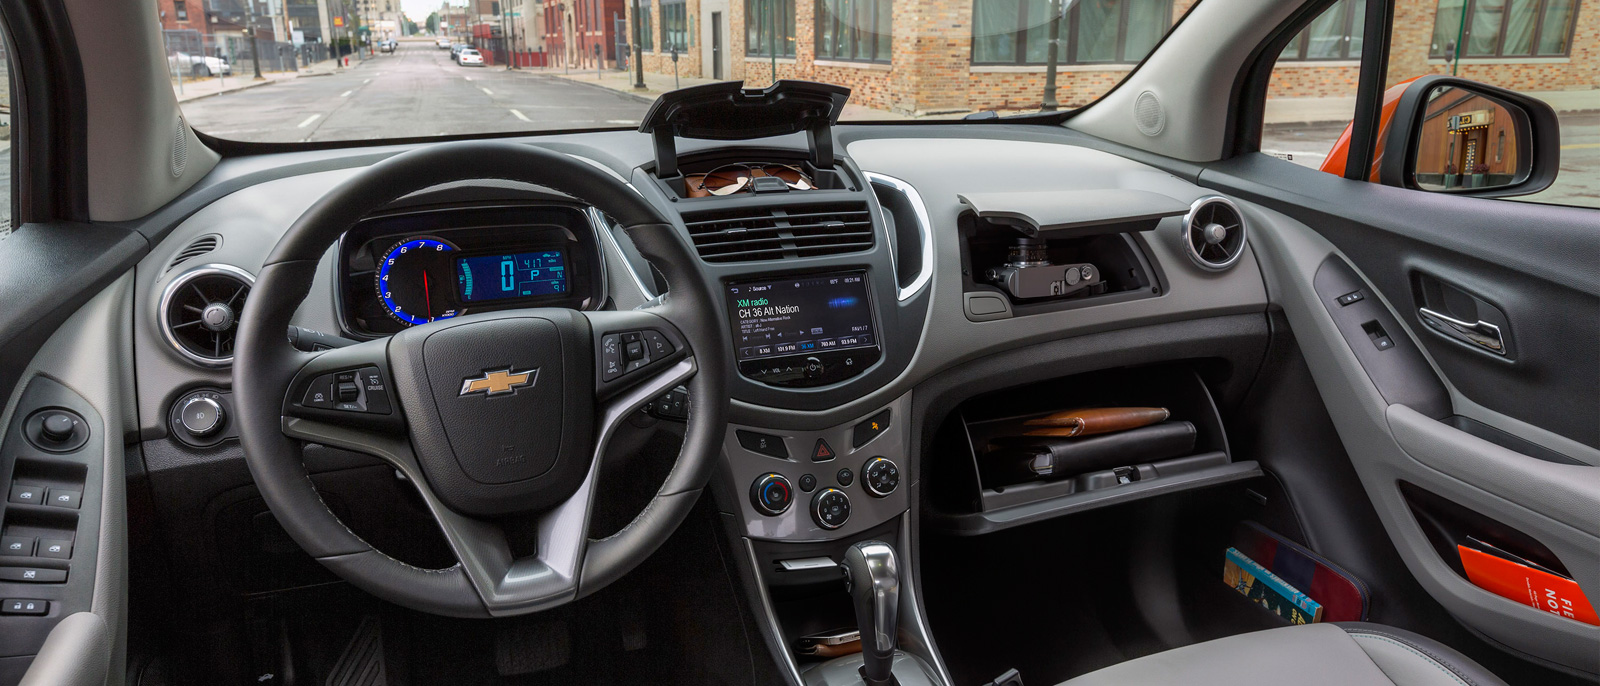 2015 Chevy Trax KY Cincinnati OH | Tom Gill Chevrolet